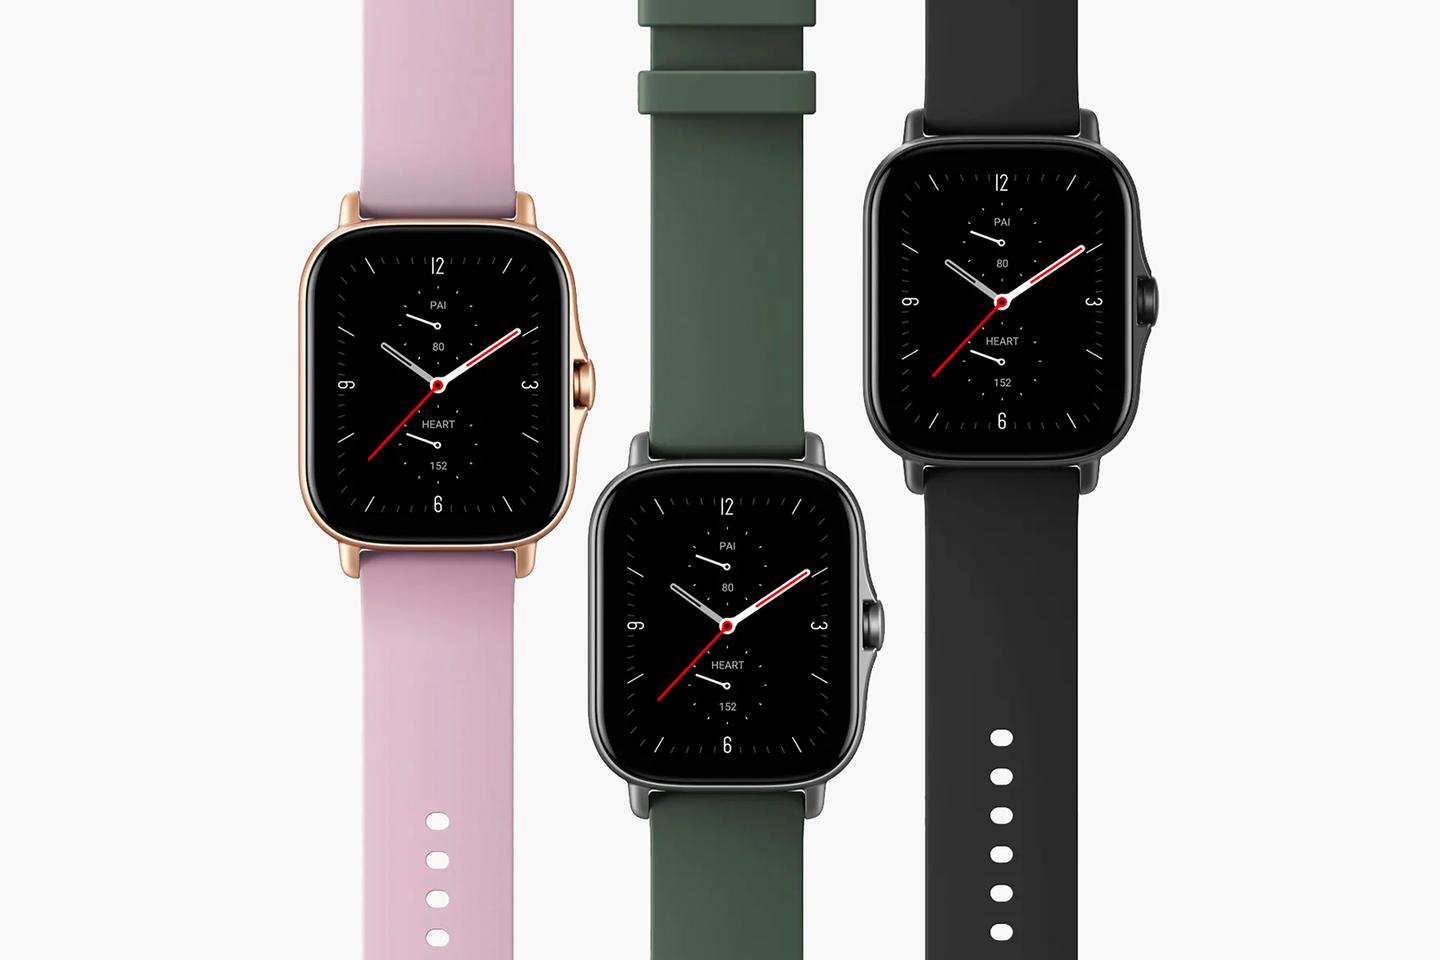 The Amazfit GTS 2e is available in three color combinations